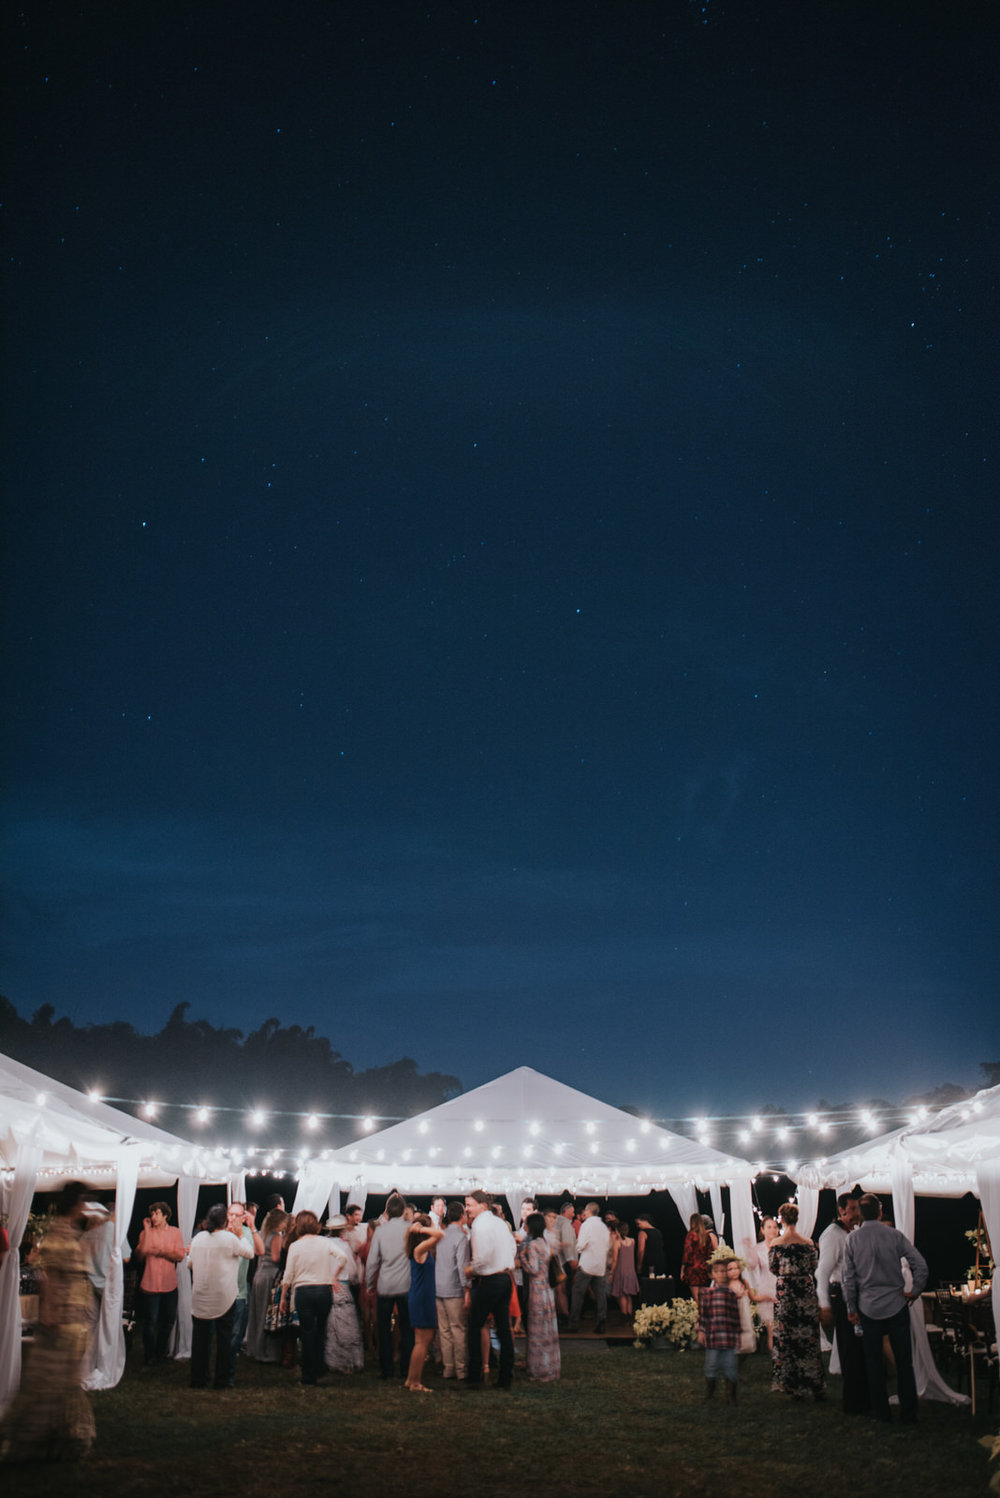 28_Long_exposure_wedding_photo.jpg